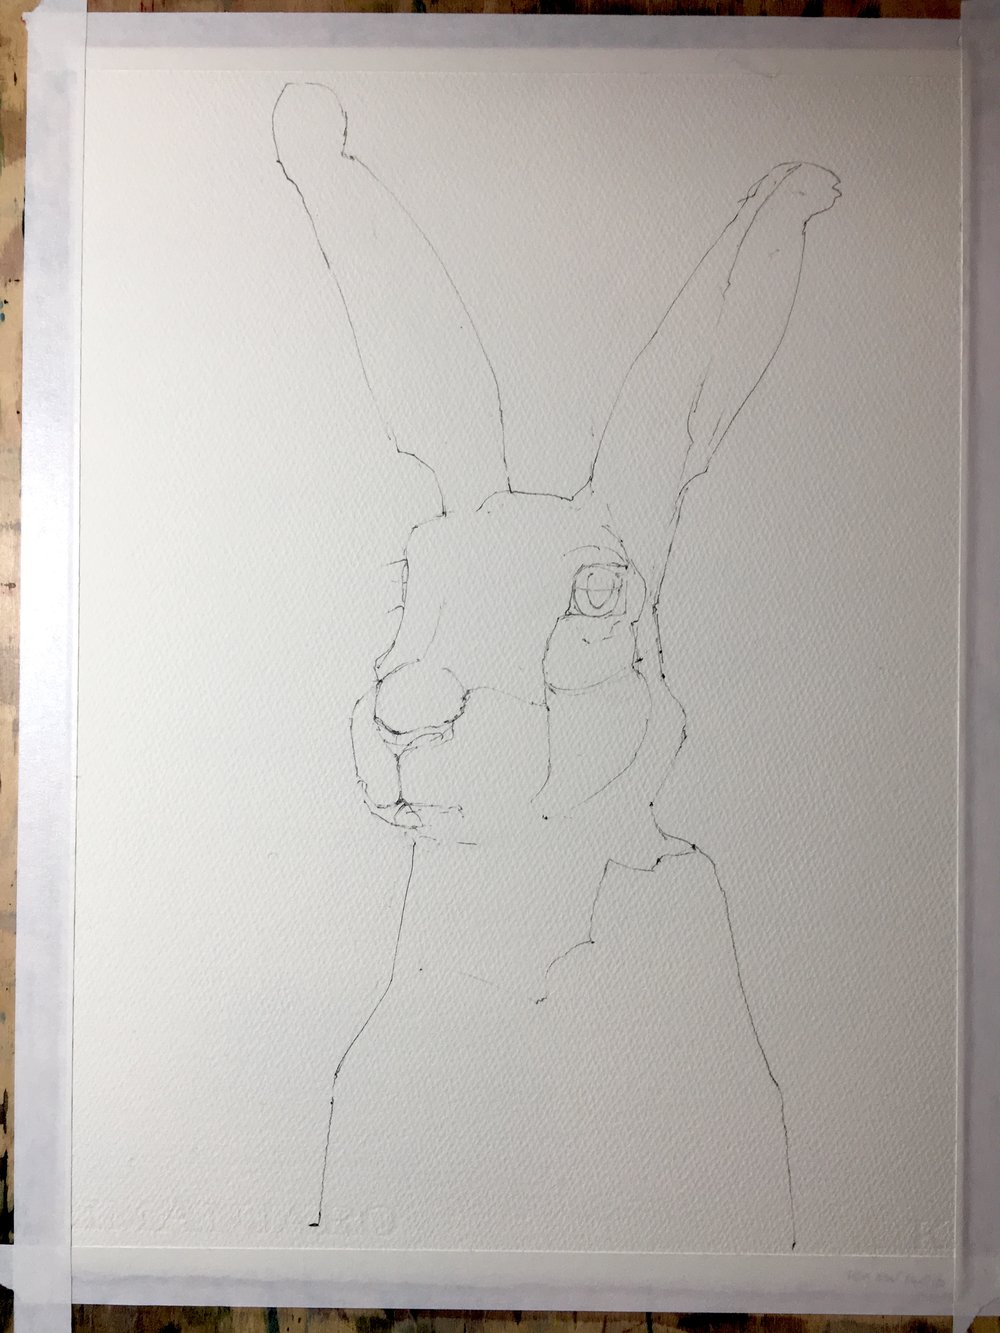 And here's the pencil drawing before going in with the paints.